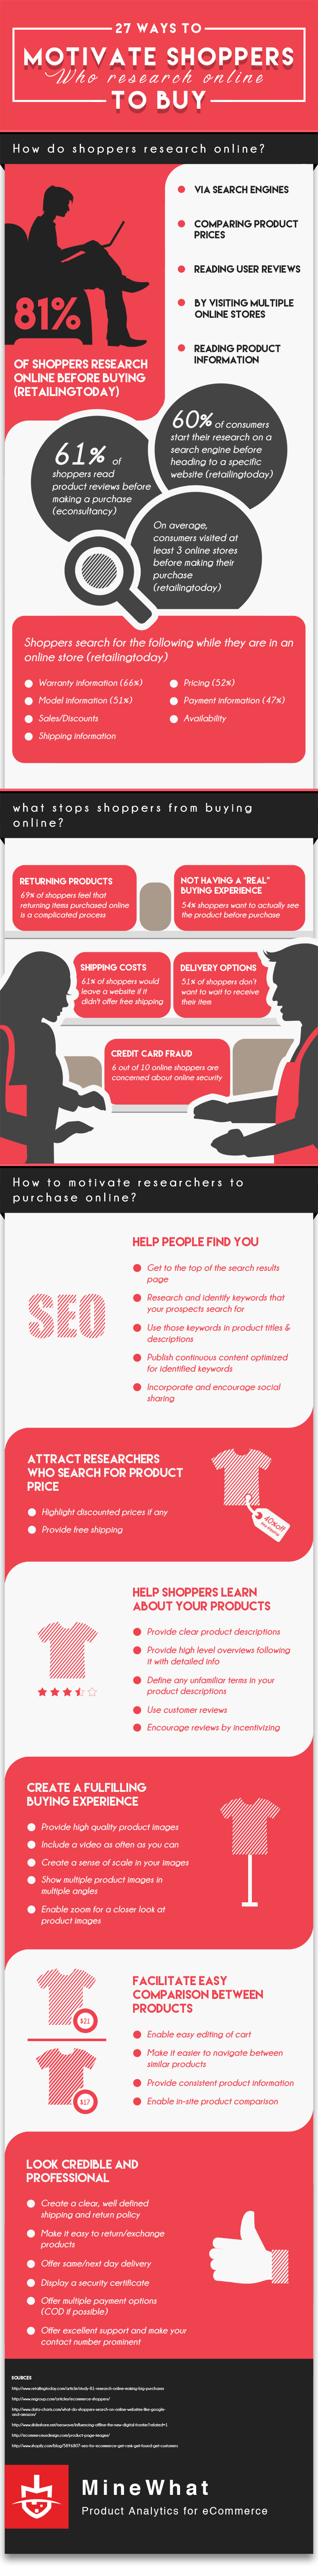 27 ways to MOTIVATE shoppers who research online TO BUY